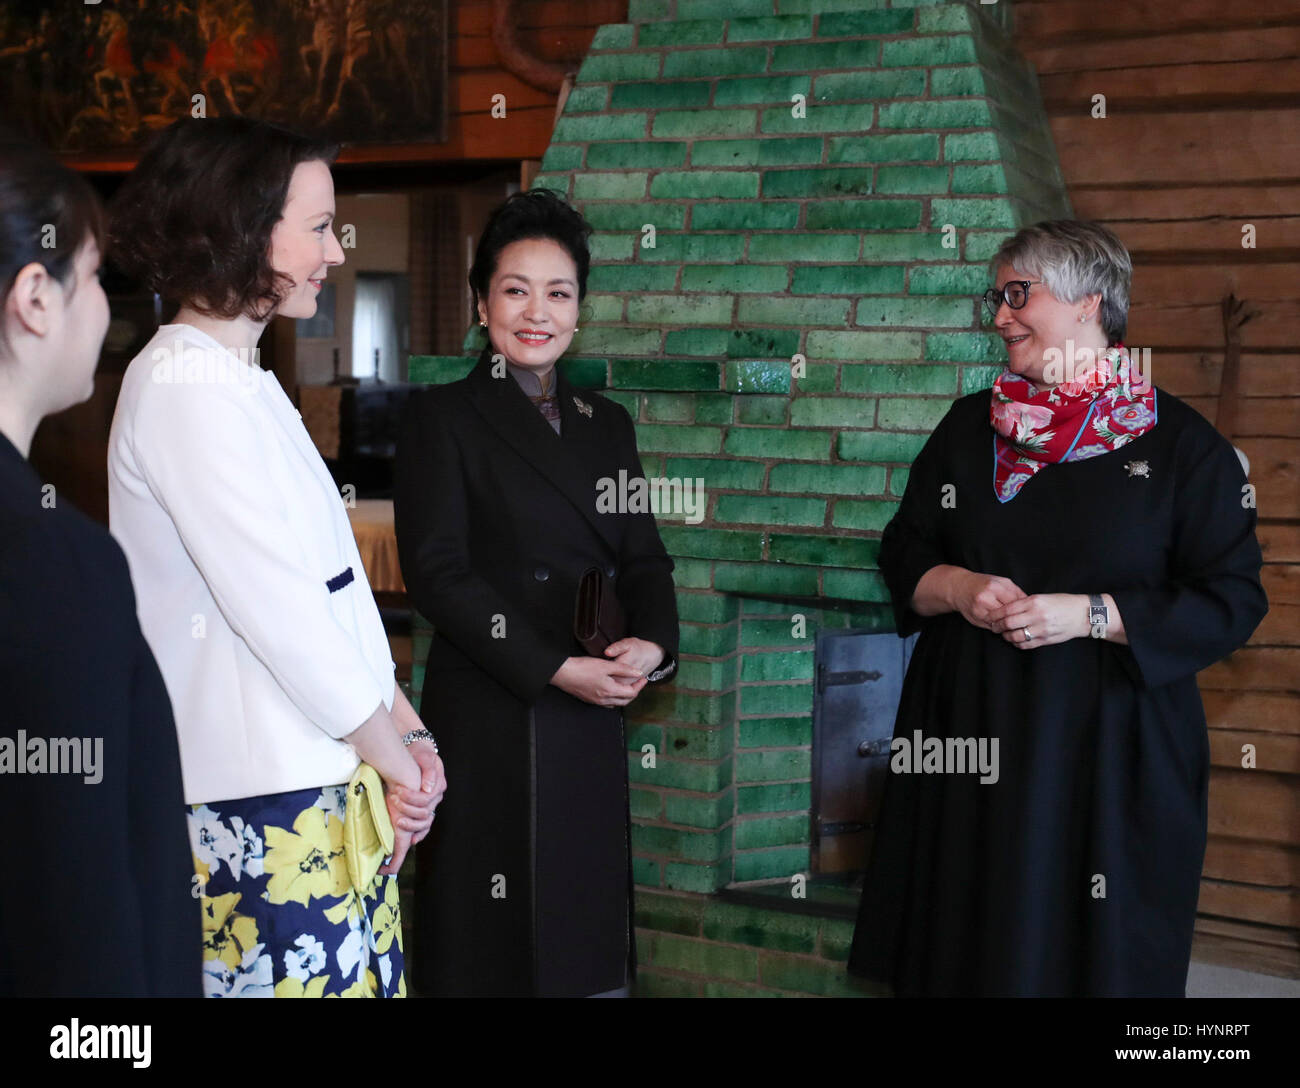 Helsinki, Finland. 5th Apr, 2017. Peng Liyuan (2nd R), wife of Chinese President Xi Jinping, visits Ainola, the Stock Photo